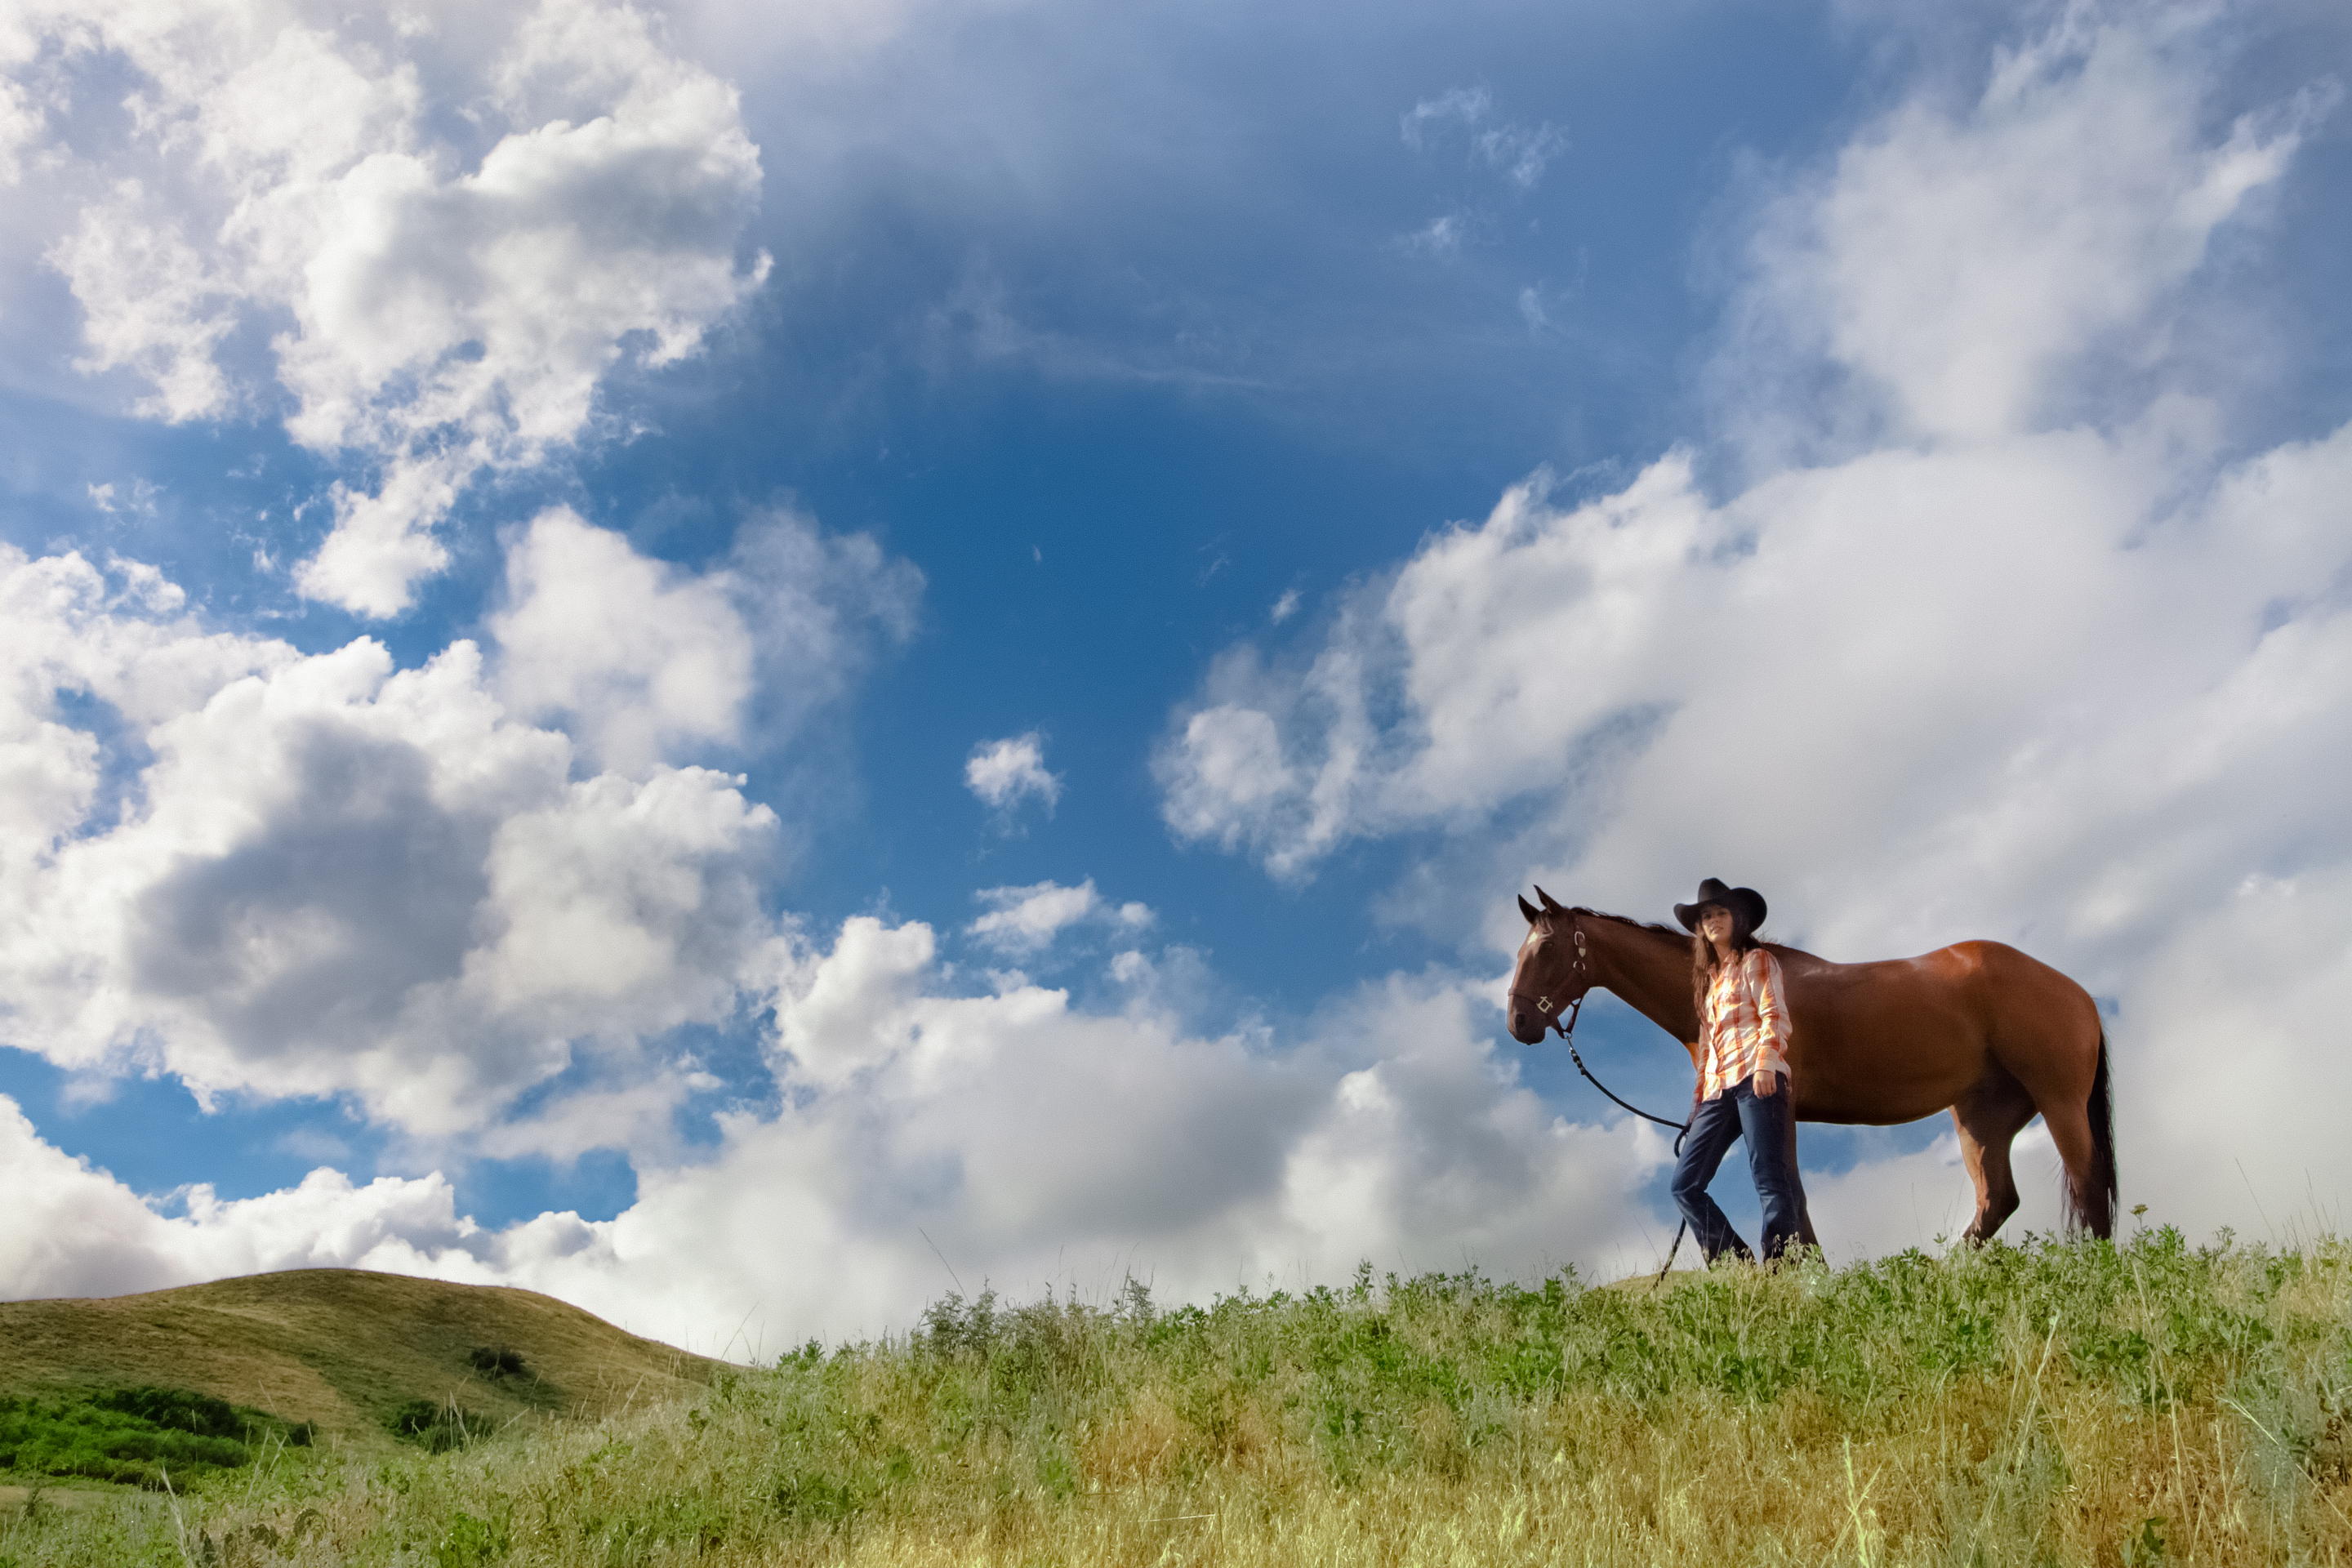 At Turn-About Ranch, each student is assigned a horse to care for on the ranch.